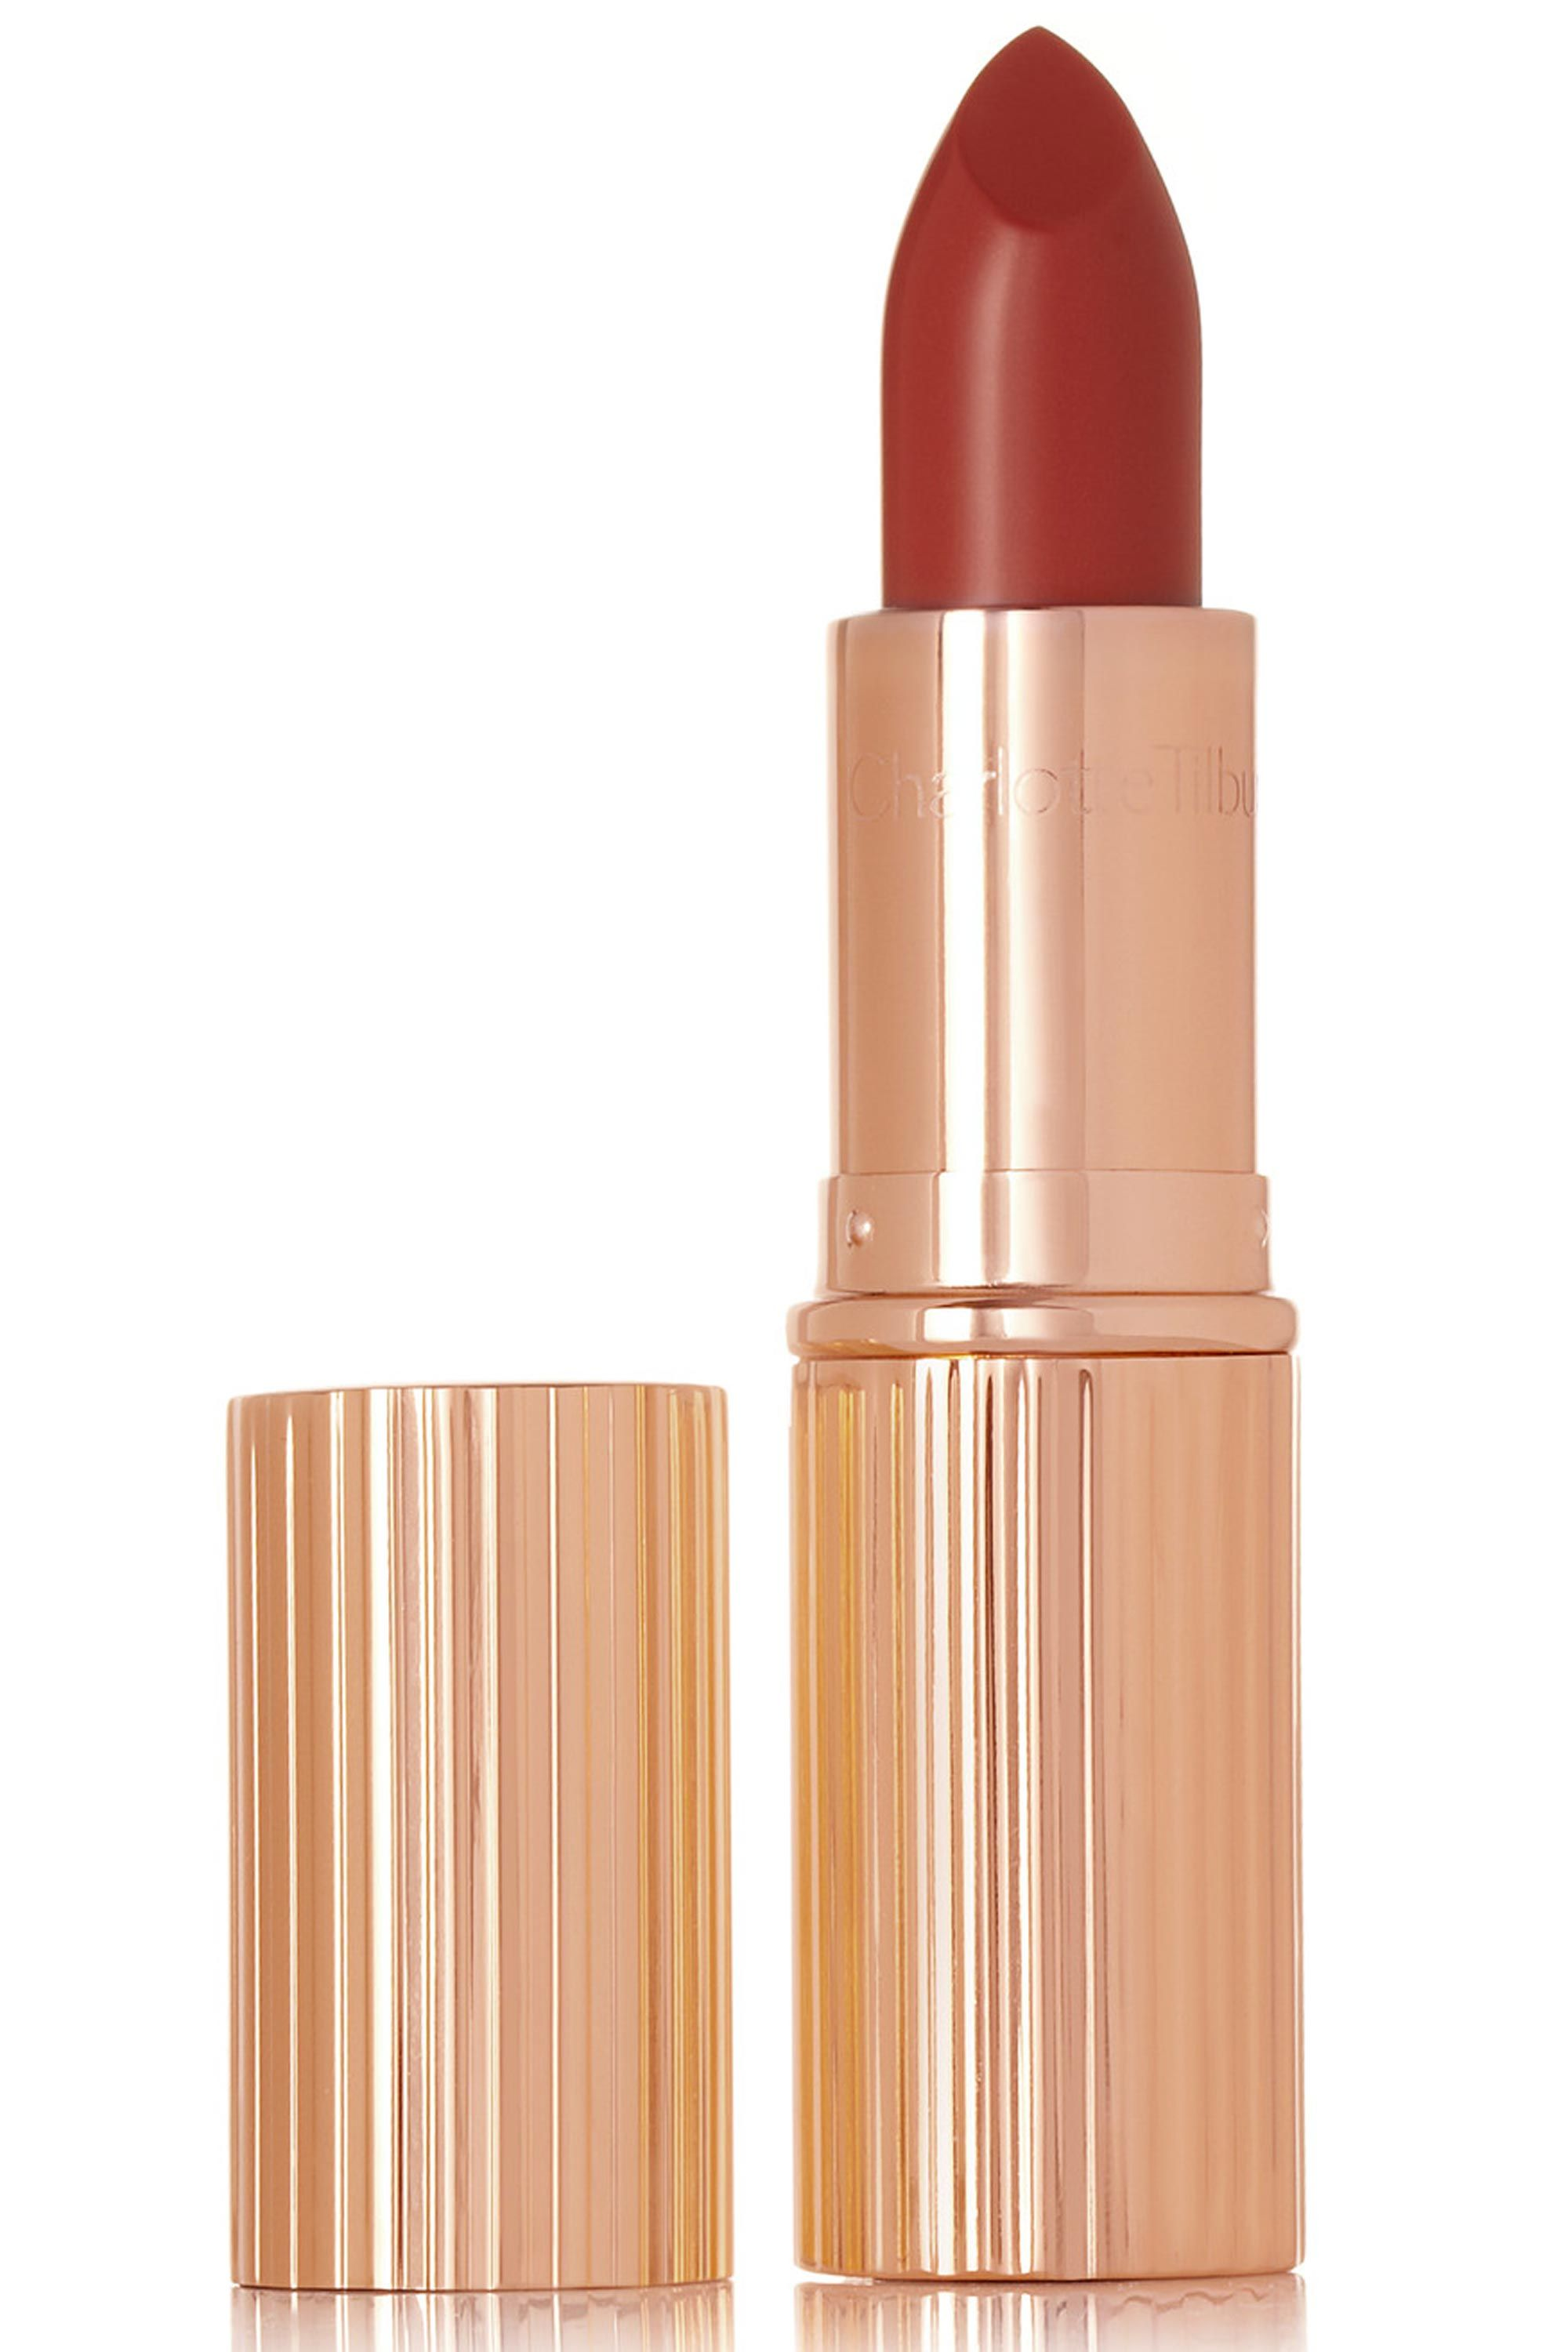 Colour care london lipstick price - Colour Care London Lipstick Price 61